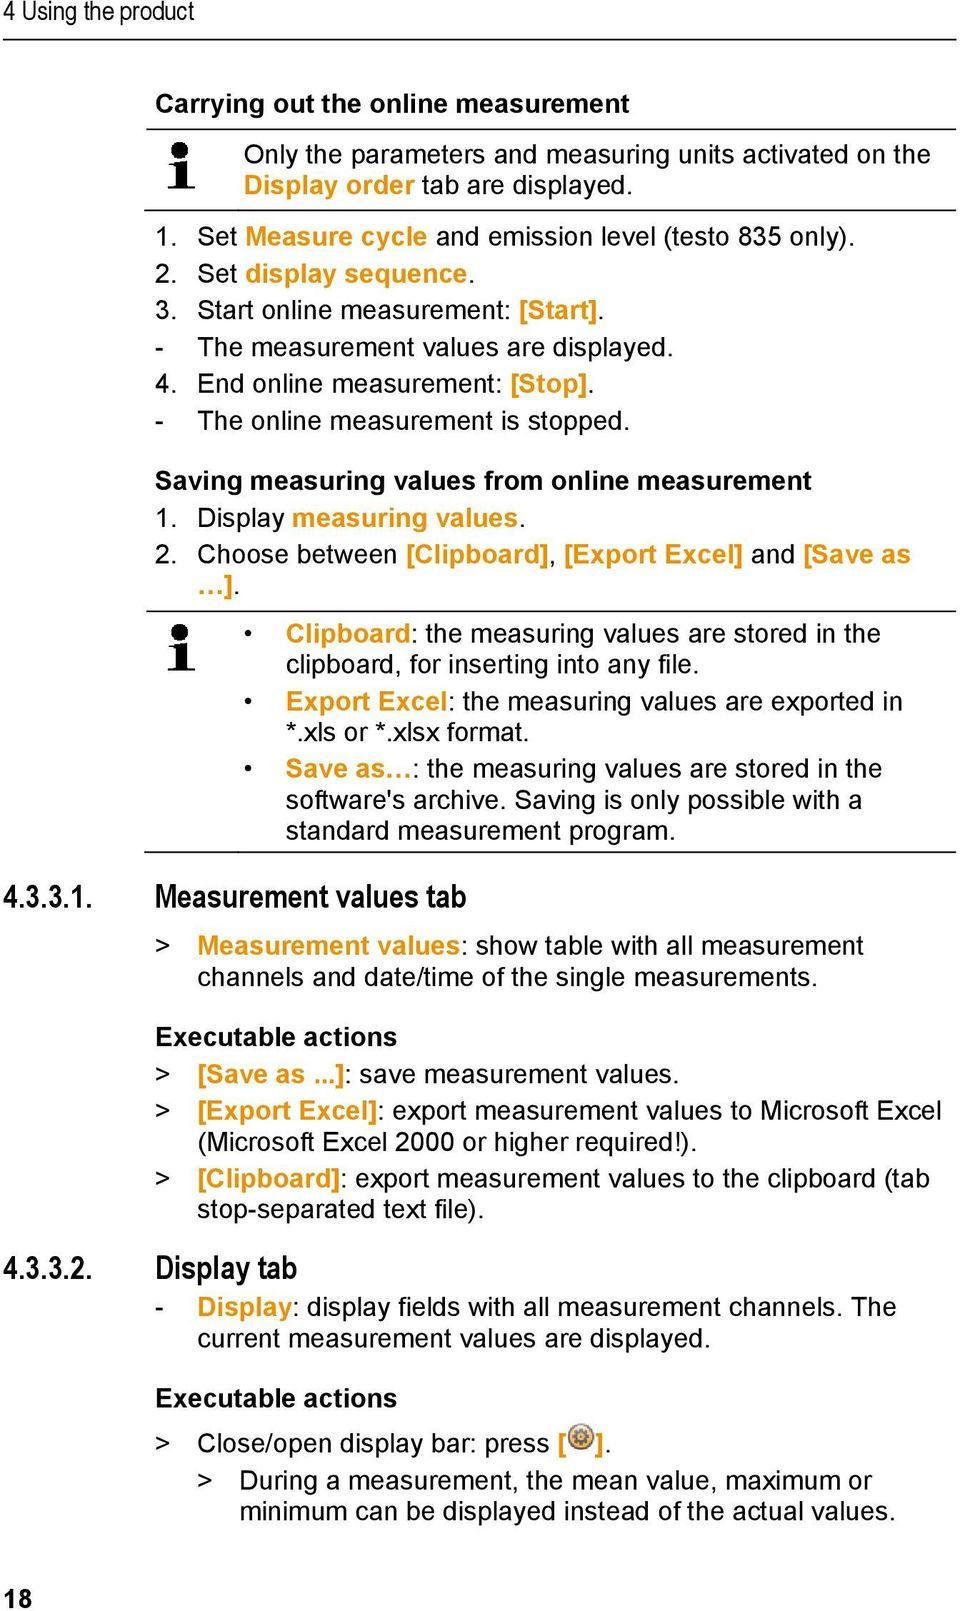 Saving measuring values from online measurement 1. Display measuring values. 2. Choose between [Clipboard], [Export Excel] and [Save as ]. 4.3.3.1. Measurement values tab Clipboard: the measuring values are stored in the clipboard, for inserting into any file.